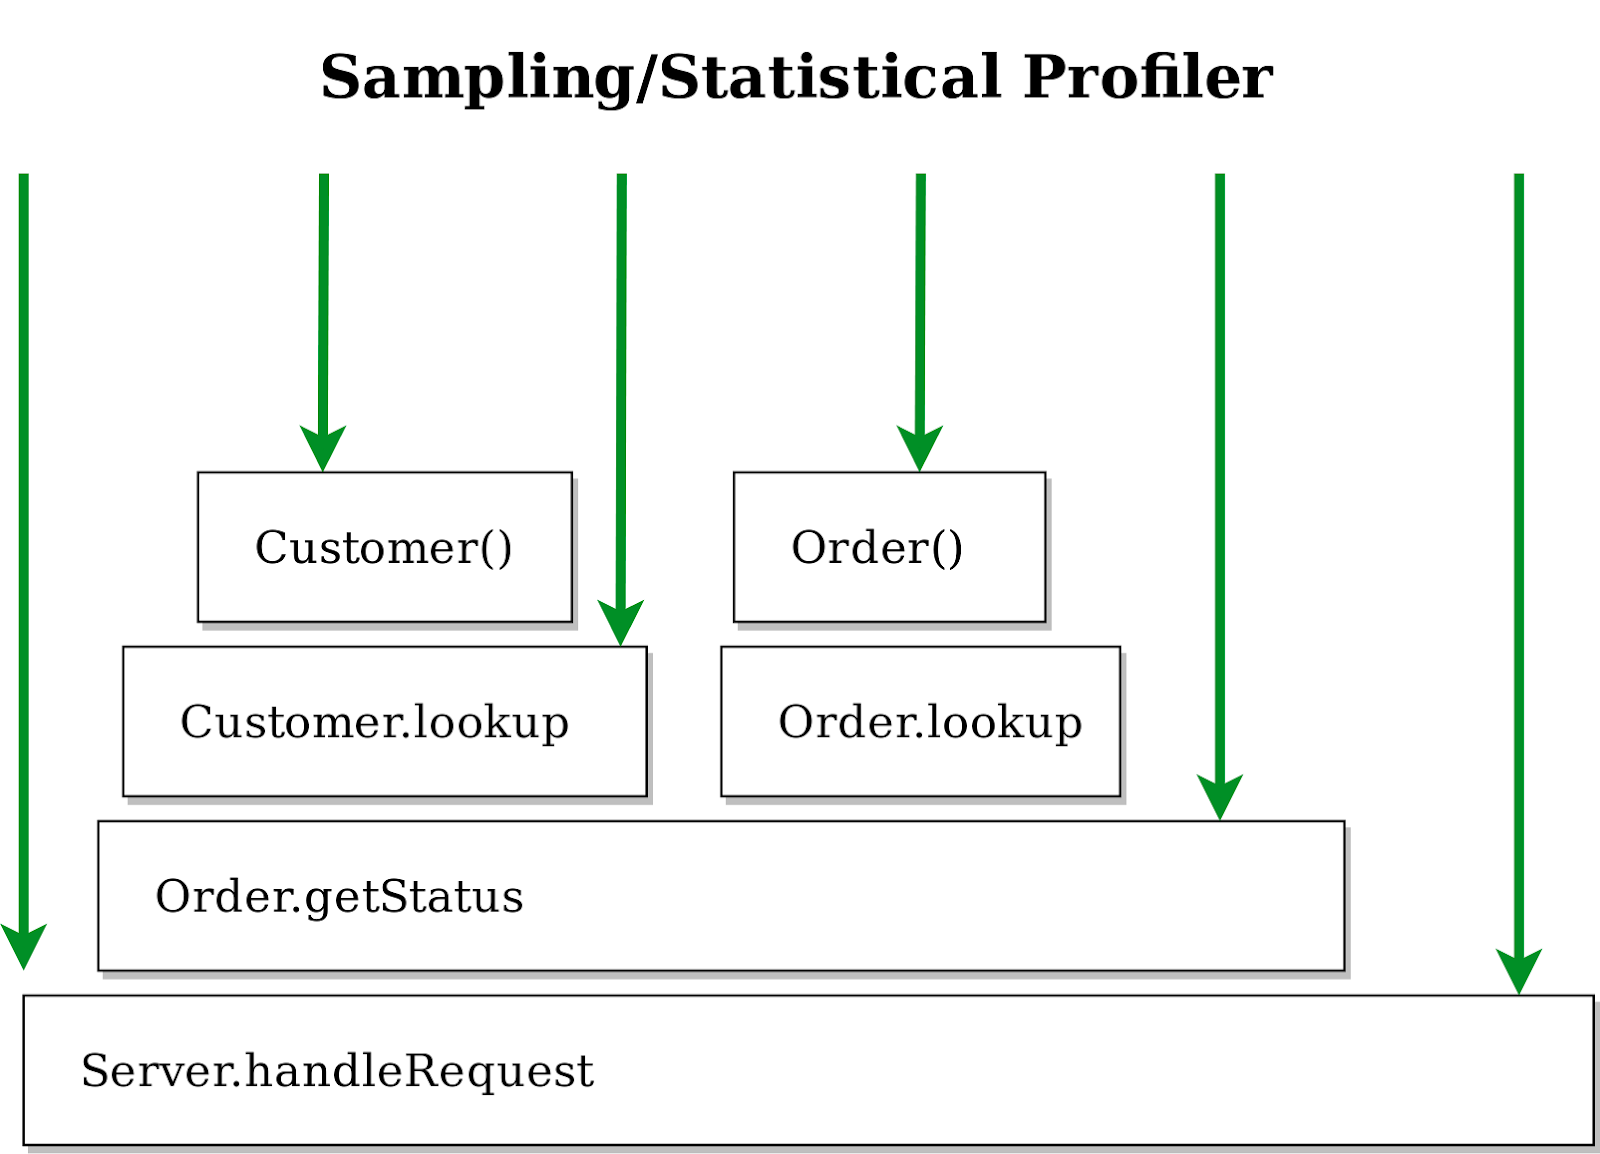 Profiling samples being taken of the call stack